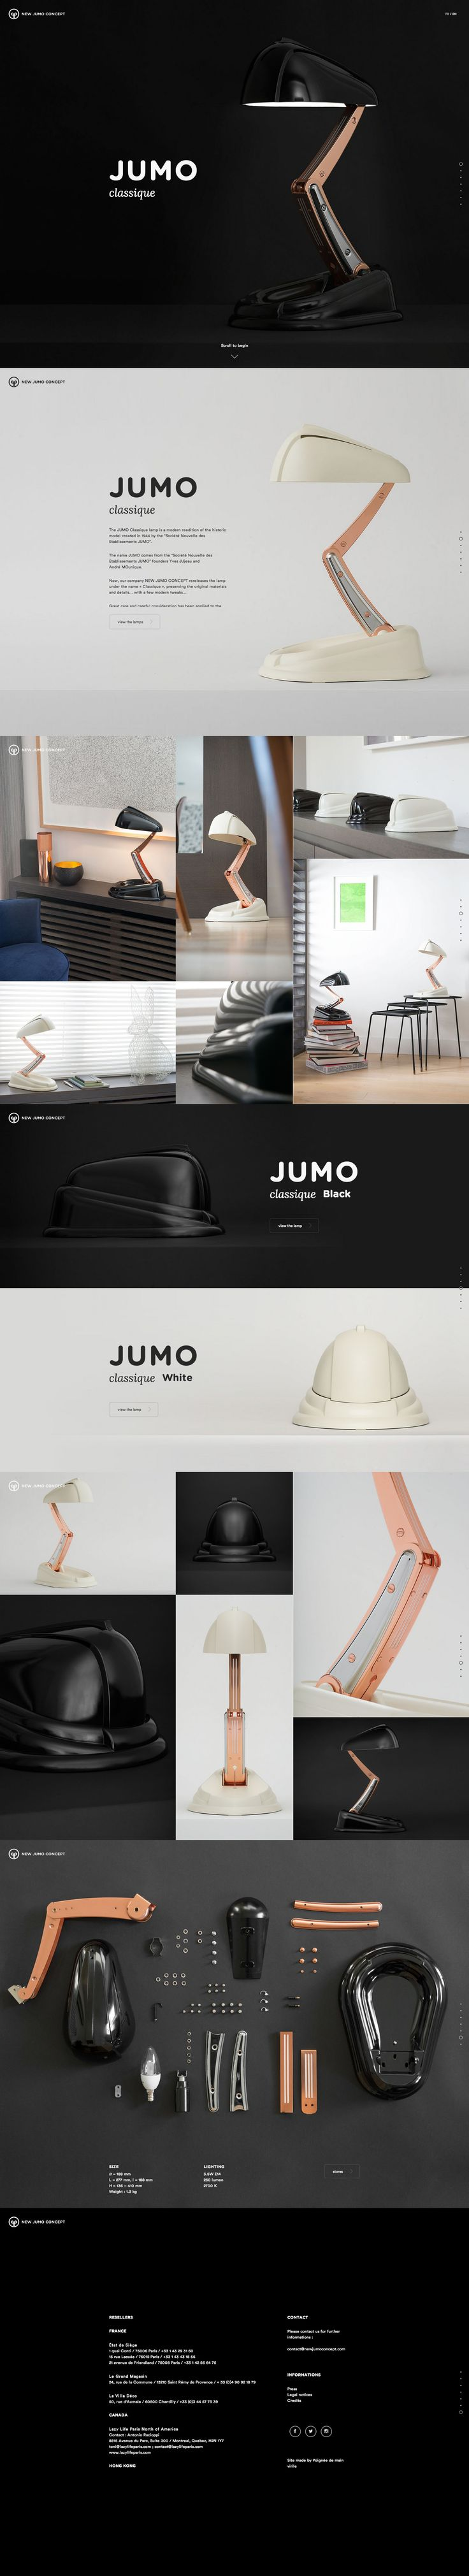 Jumo Lamp webdesign